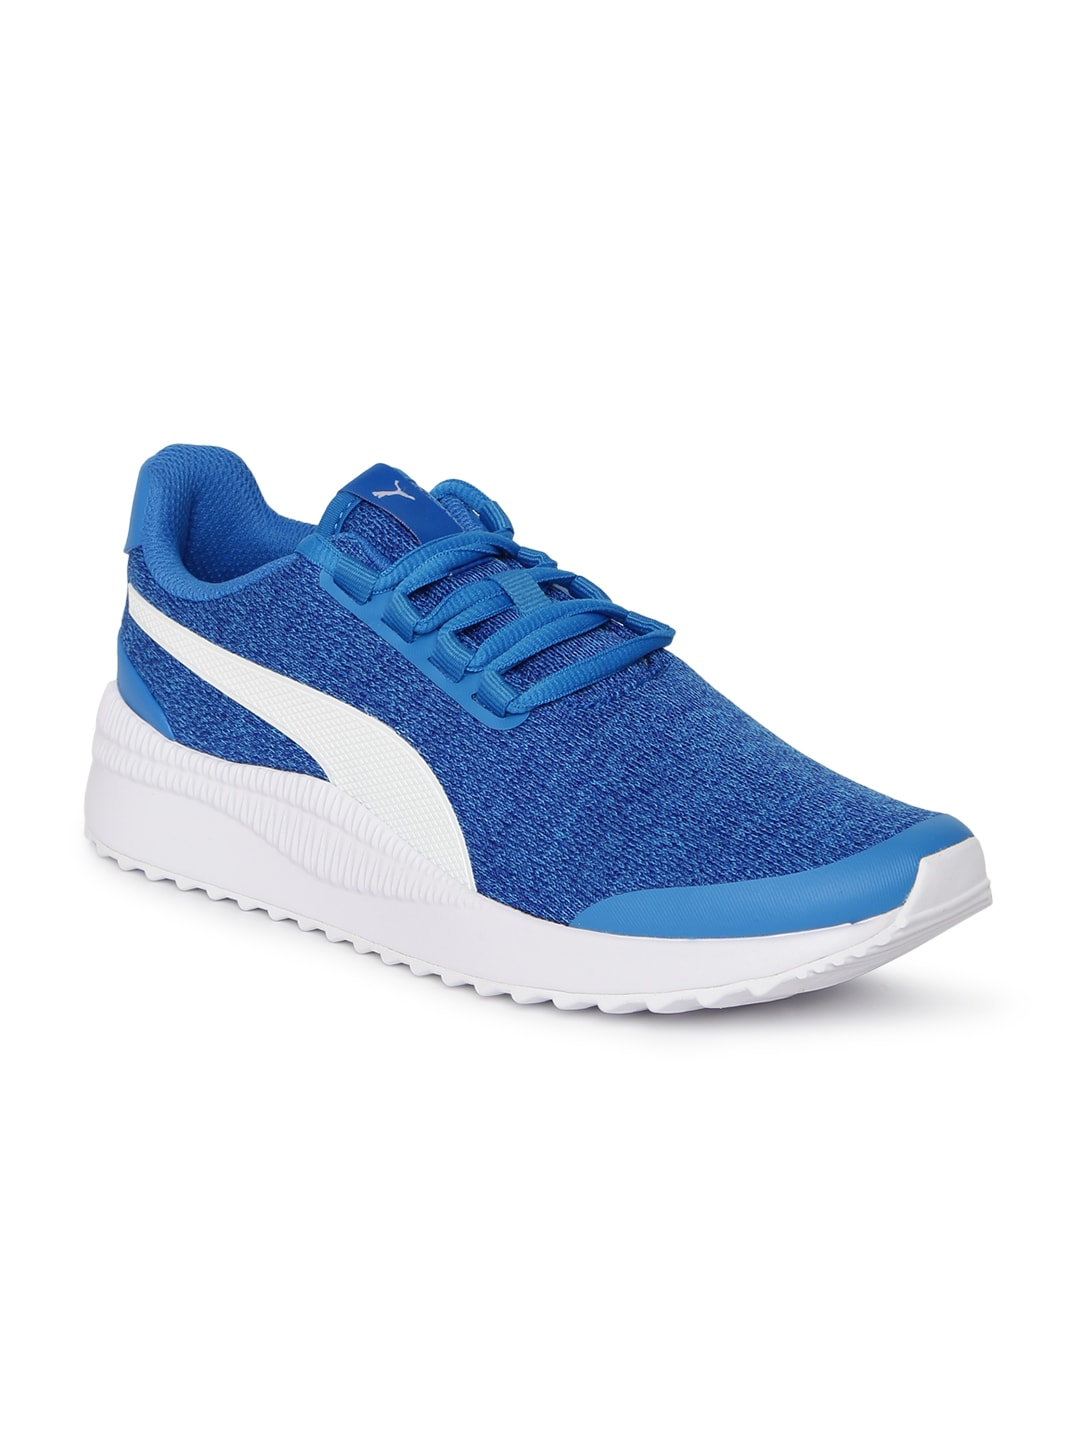 efe9033a744 Girls Puma Casual Shoes - Buy Girls Puma Casual Shoes online in India